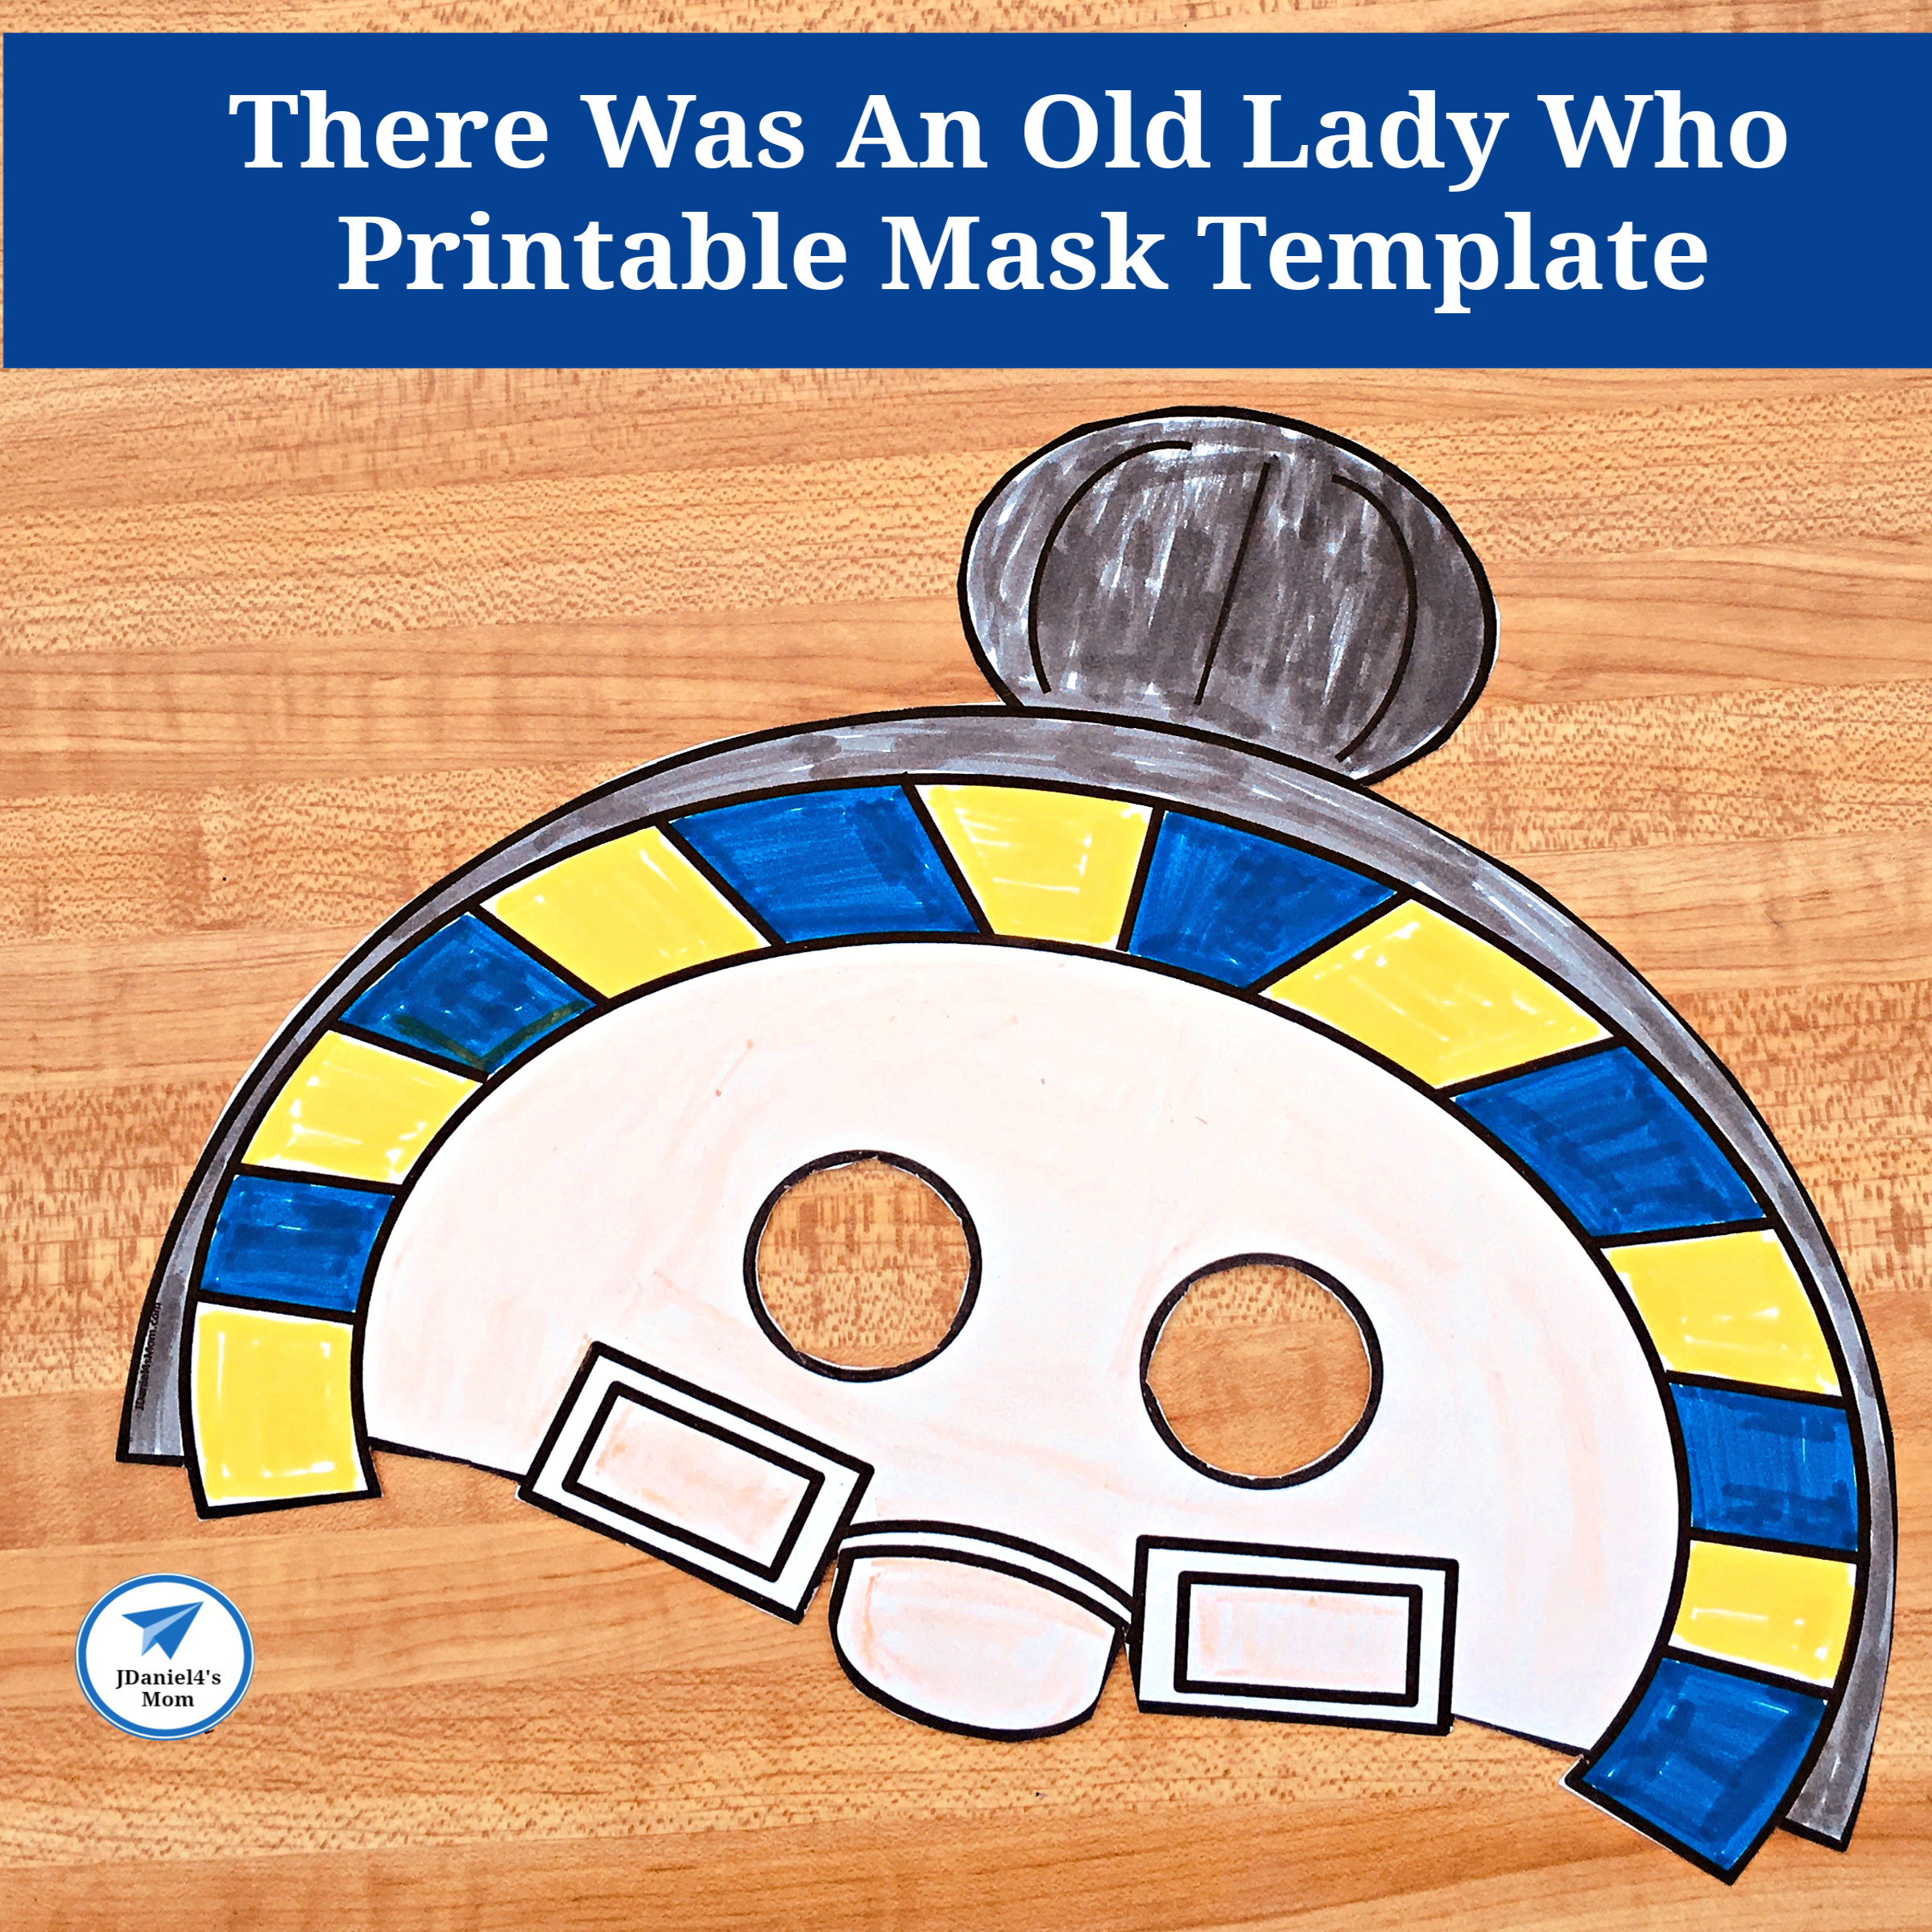 There Was An Old Lady Who Printable Mask Template